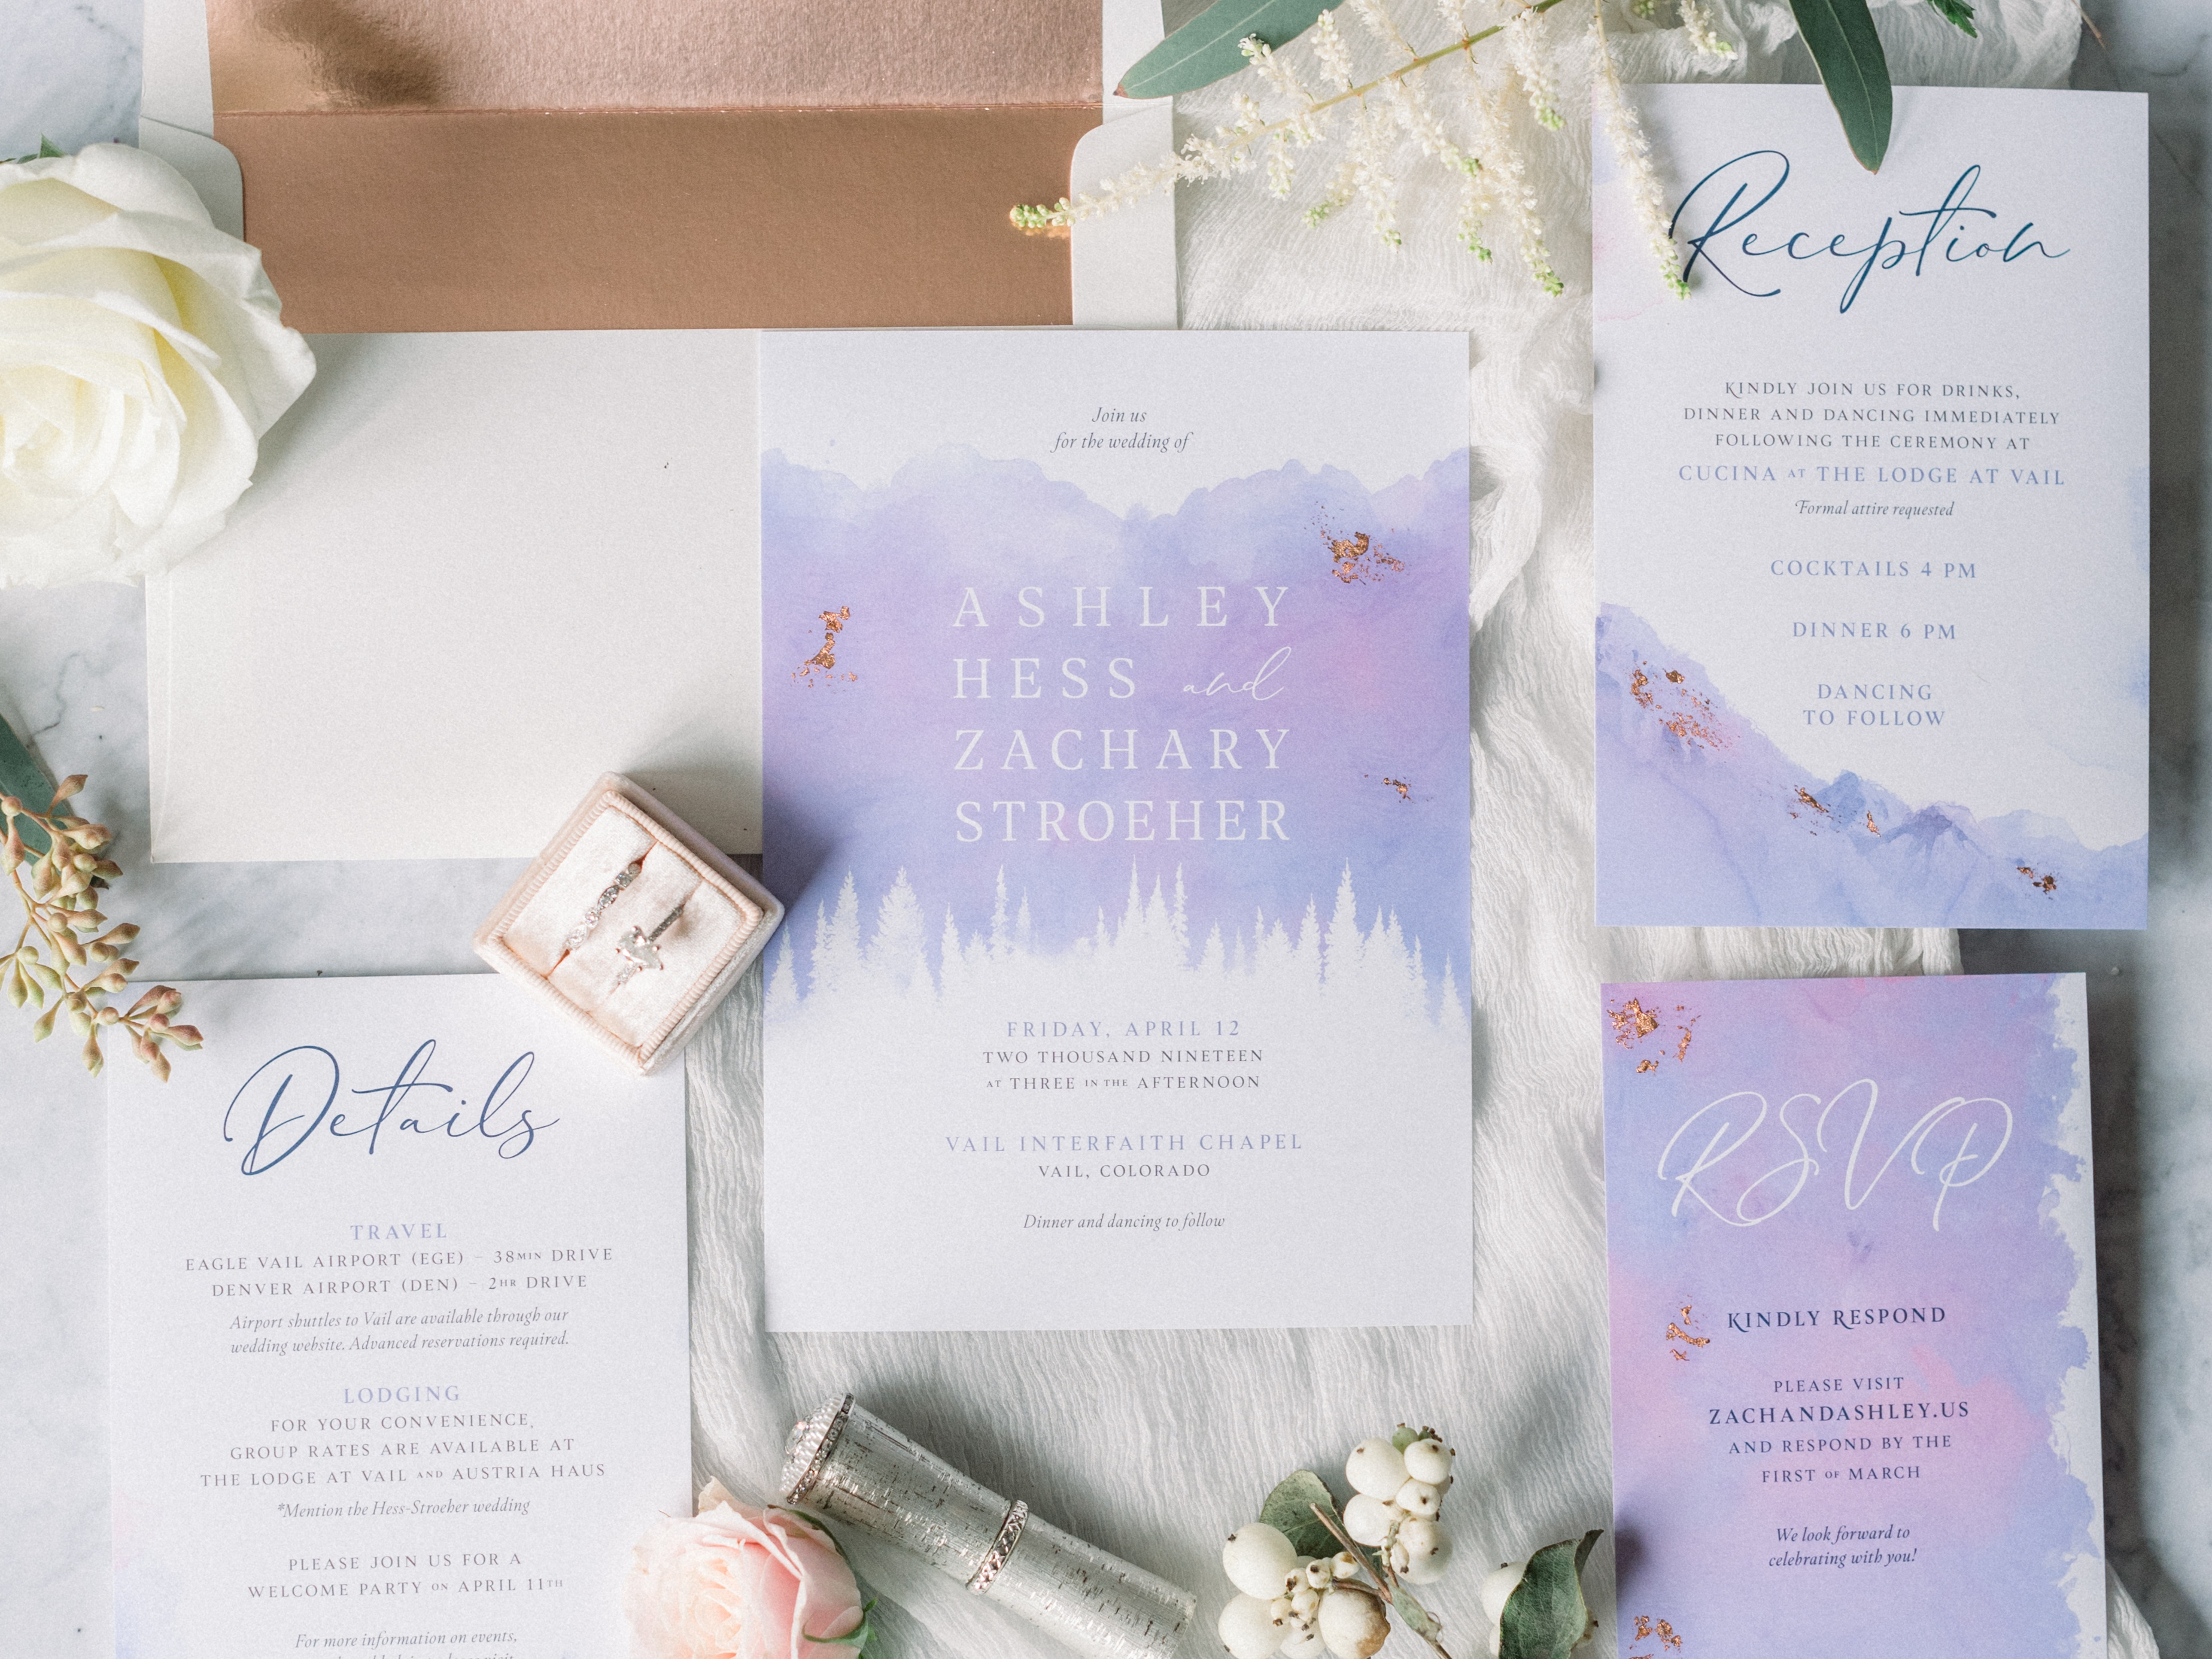 Wedding Invitation Suite by Zach Stroeher on Dribbble